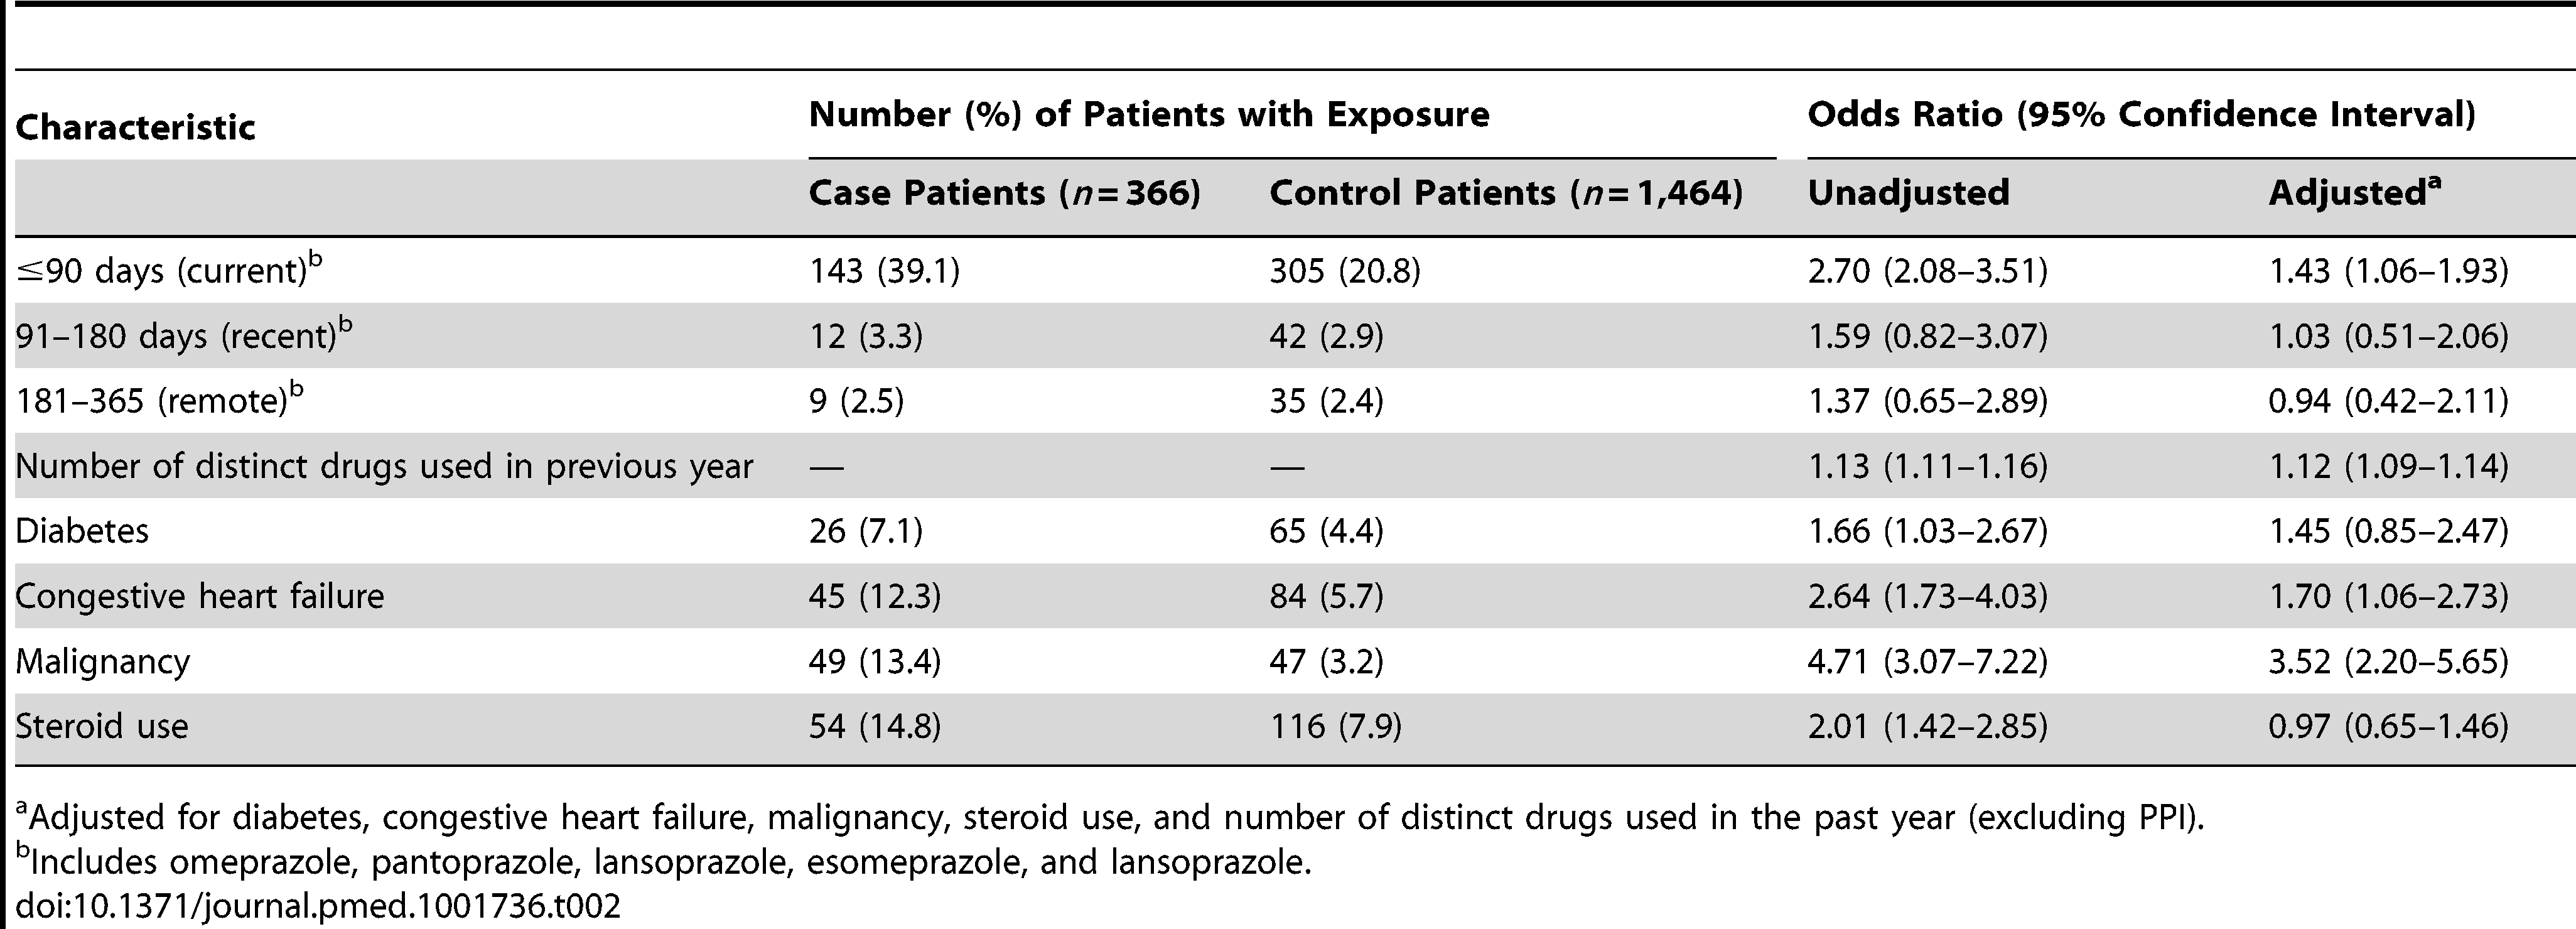 Proton pump inhibitor use and hospitalization with hypomagnesemia.